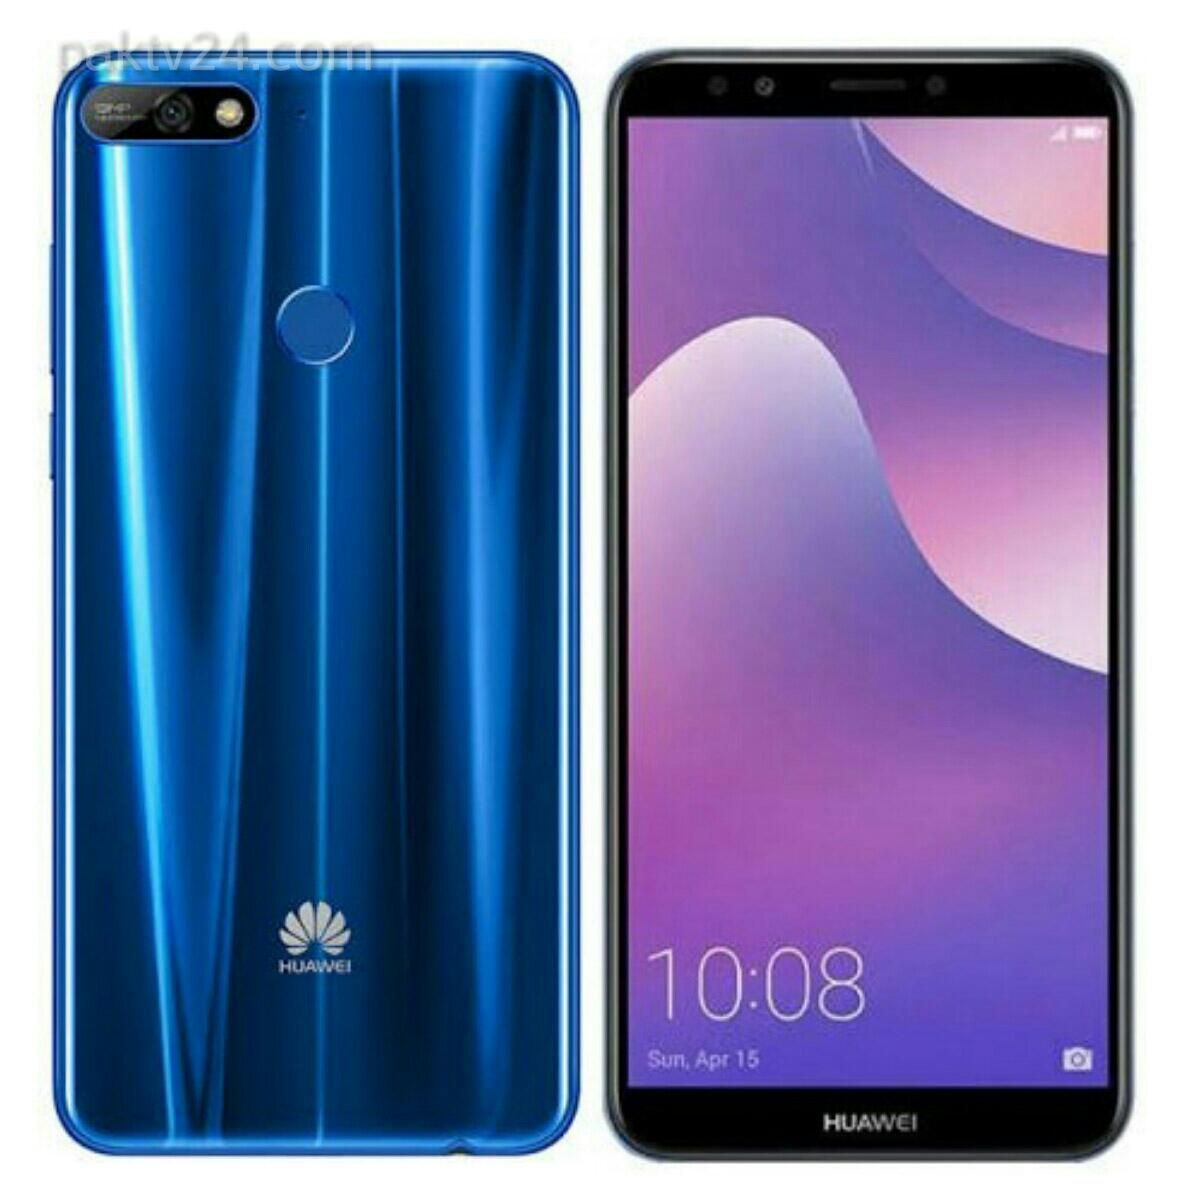 Huawei Y7 Prime 2019 Is A Dual Sim Nano Mobile With 32gb Build In Memory And 3gb Ram It Has Large Screen Of 6 26 Inches It Has Du Huawei Dual Sim Best Mobile